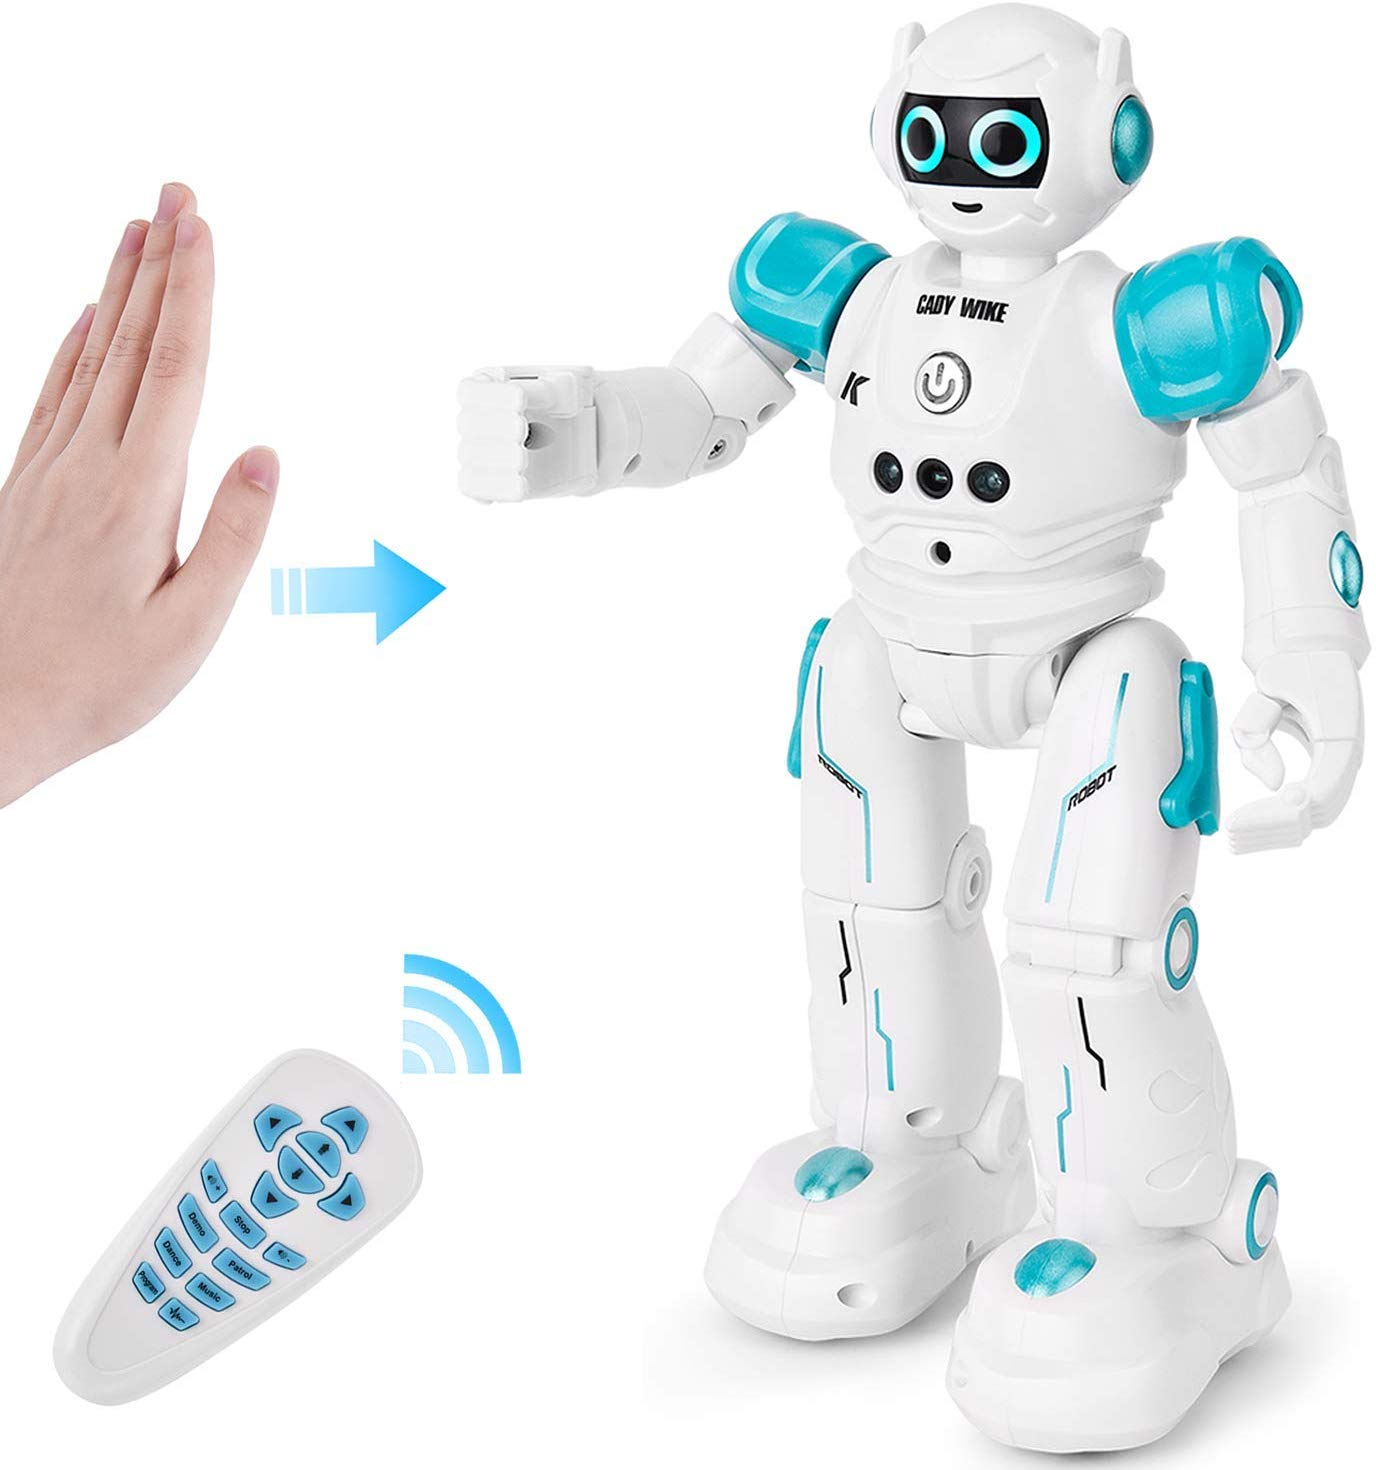 Programmable RC Robot Toys for Kids Boys